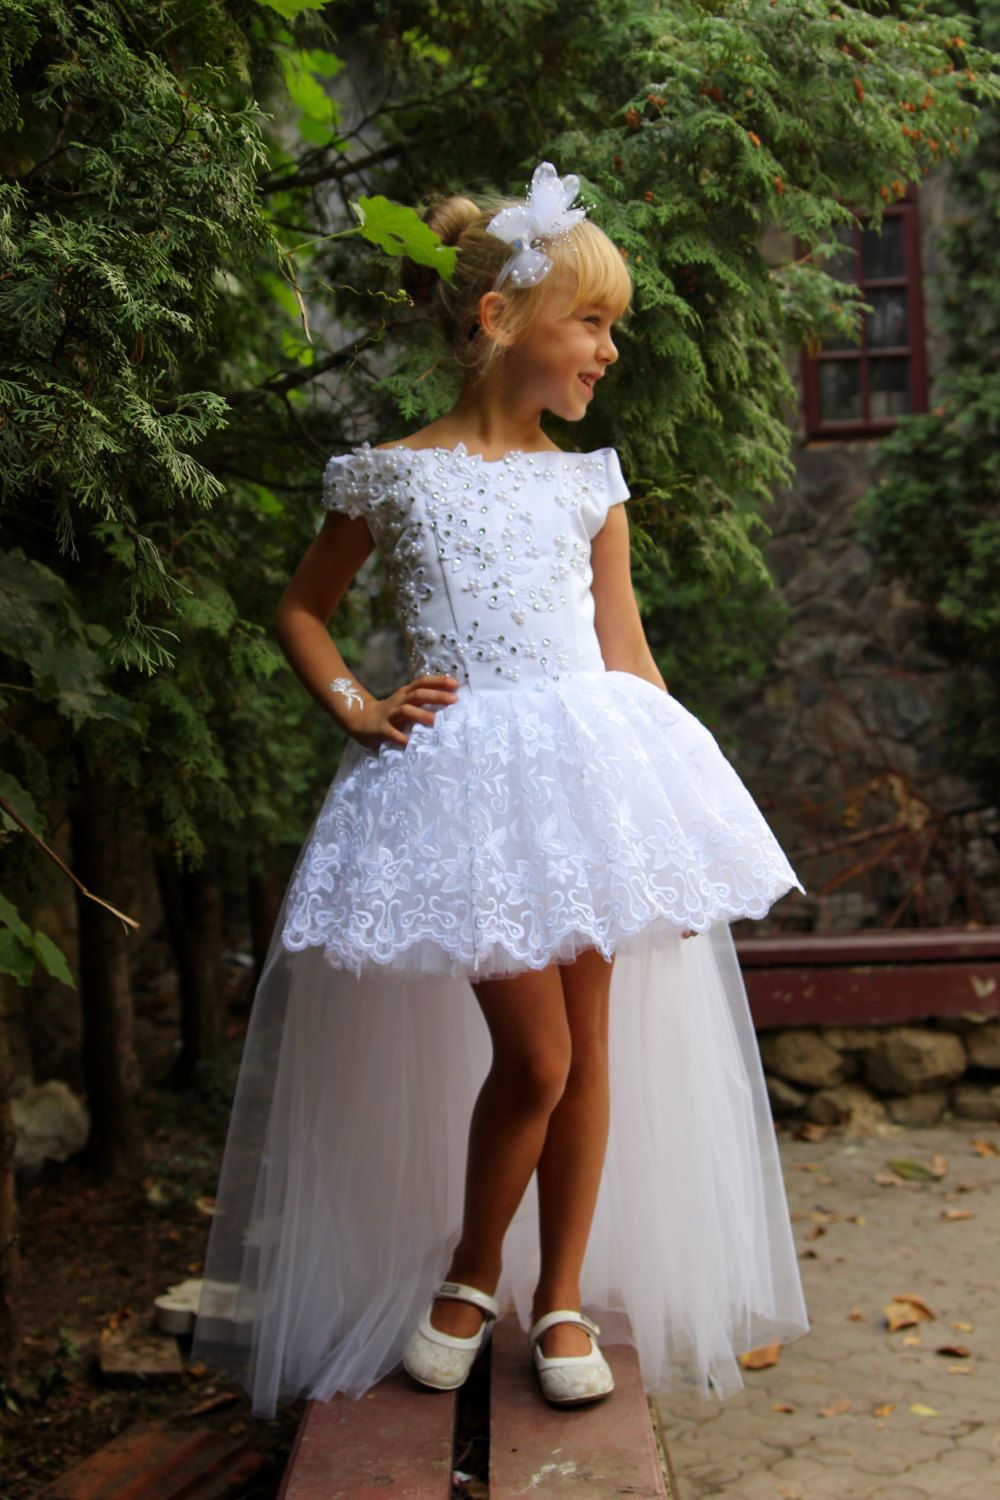 Lace white flower girl dress wedding party birthday peasant